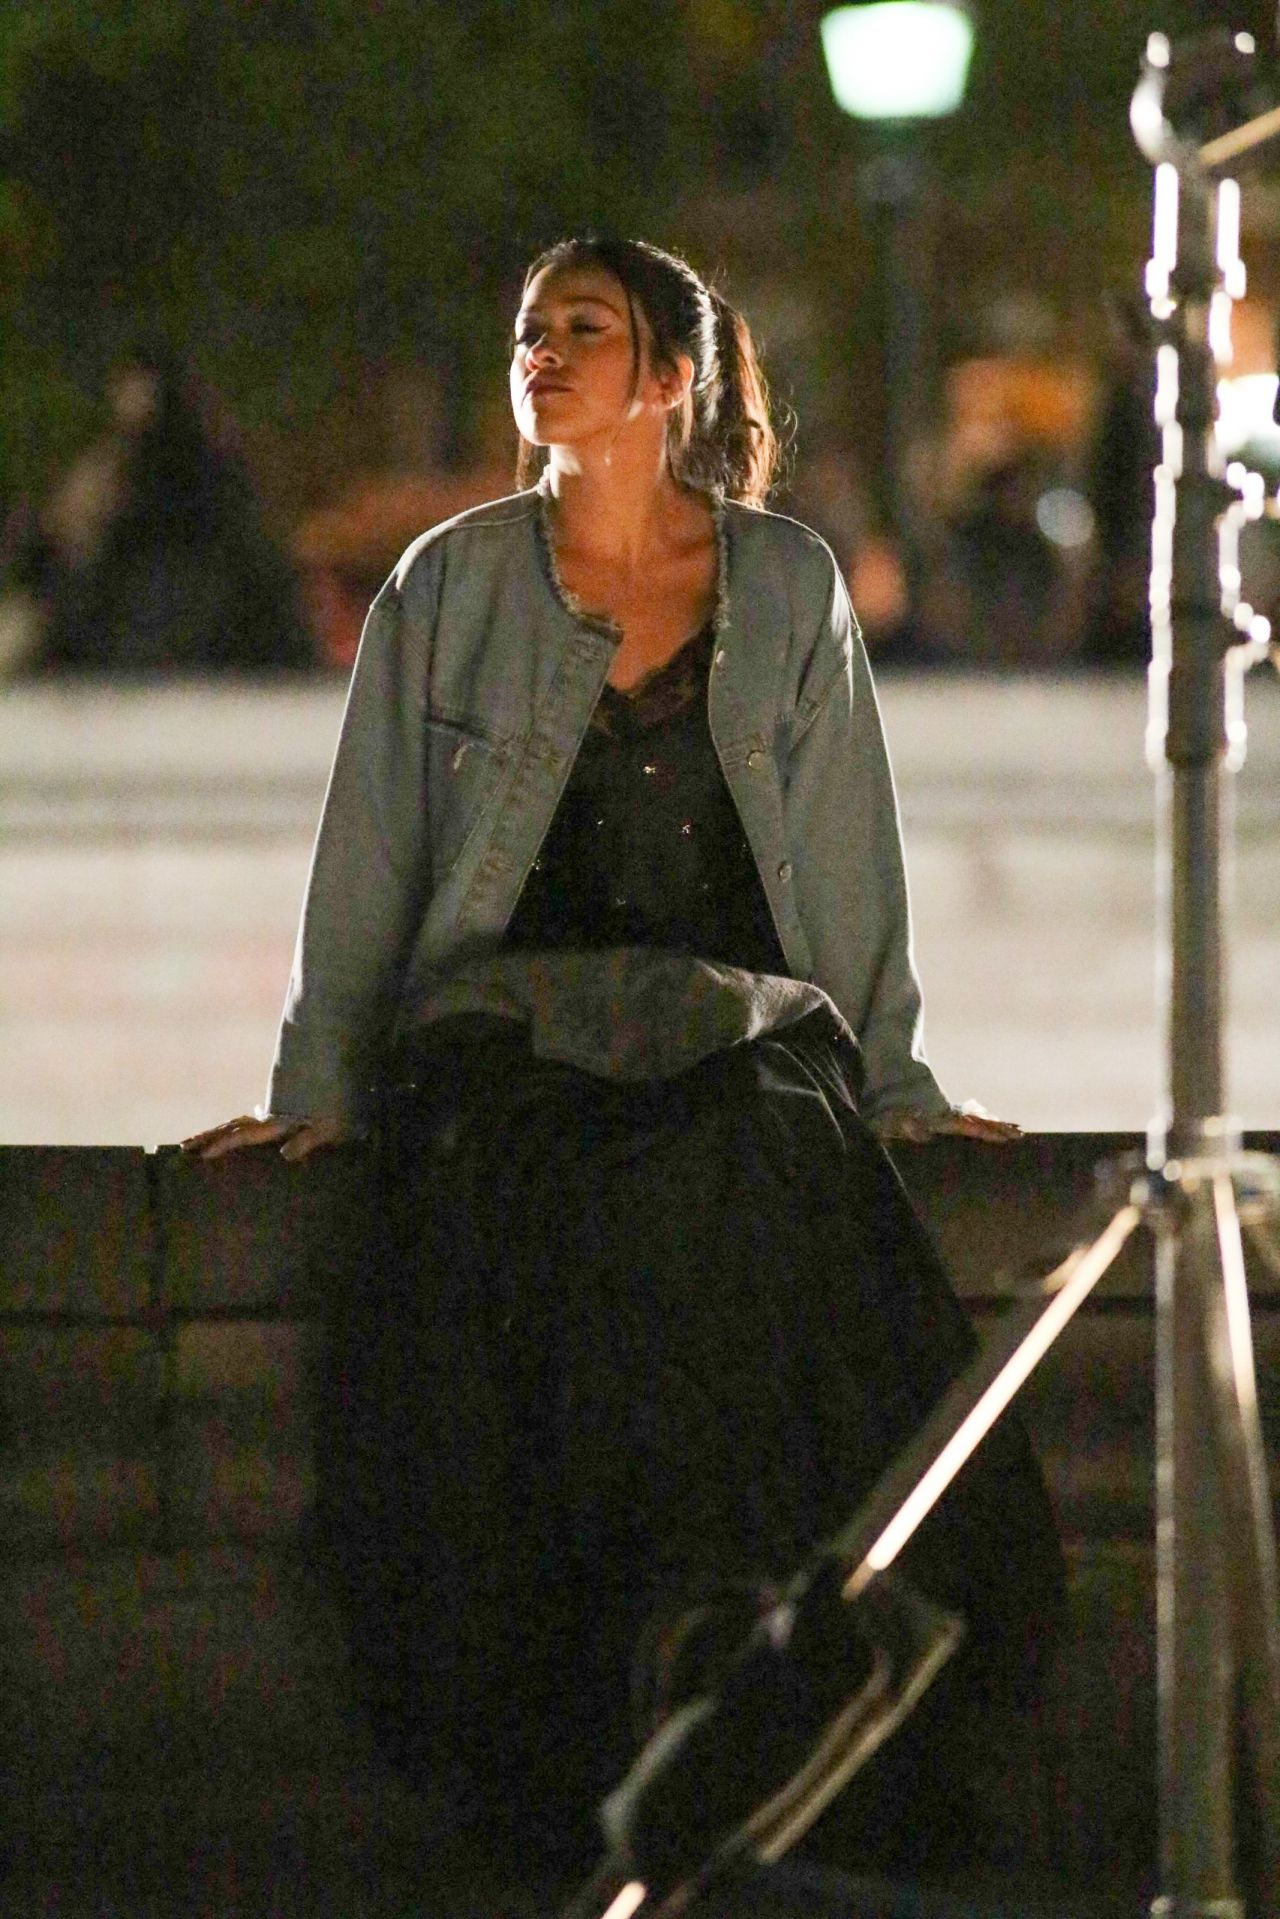 Gina Rodriguez Filming Scenes For The Netflix Someone